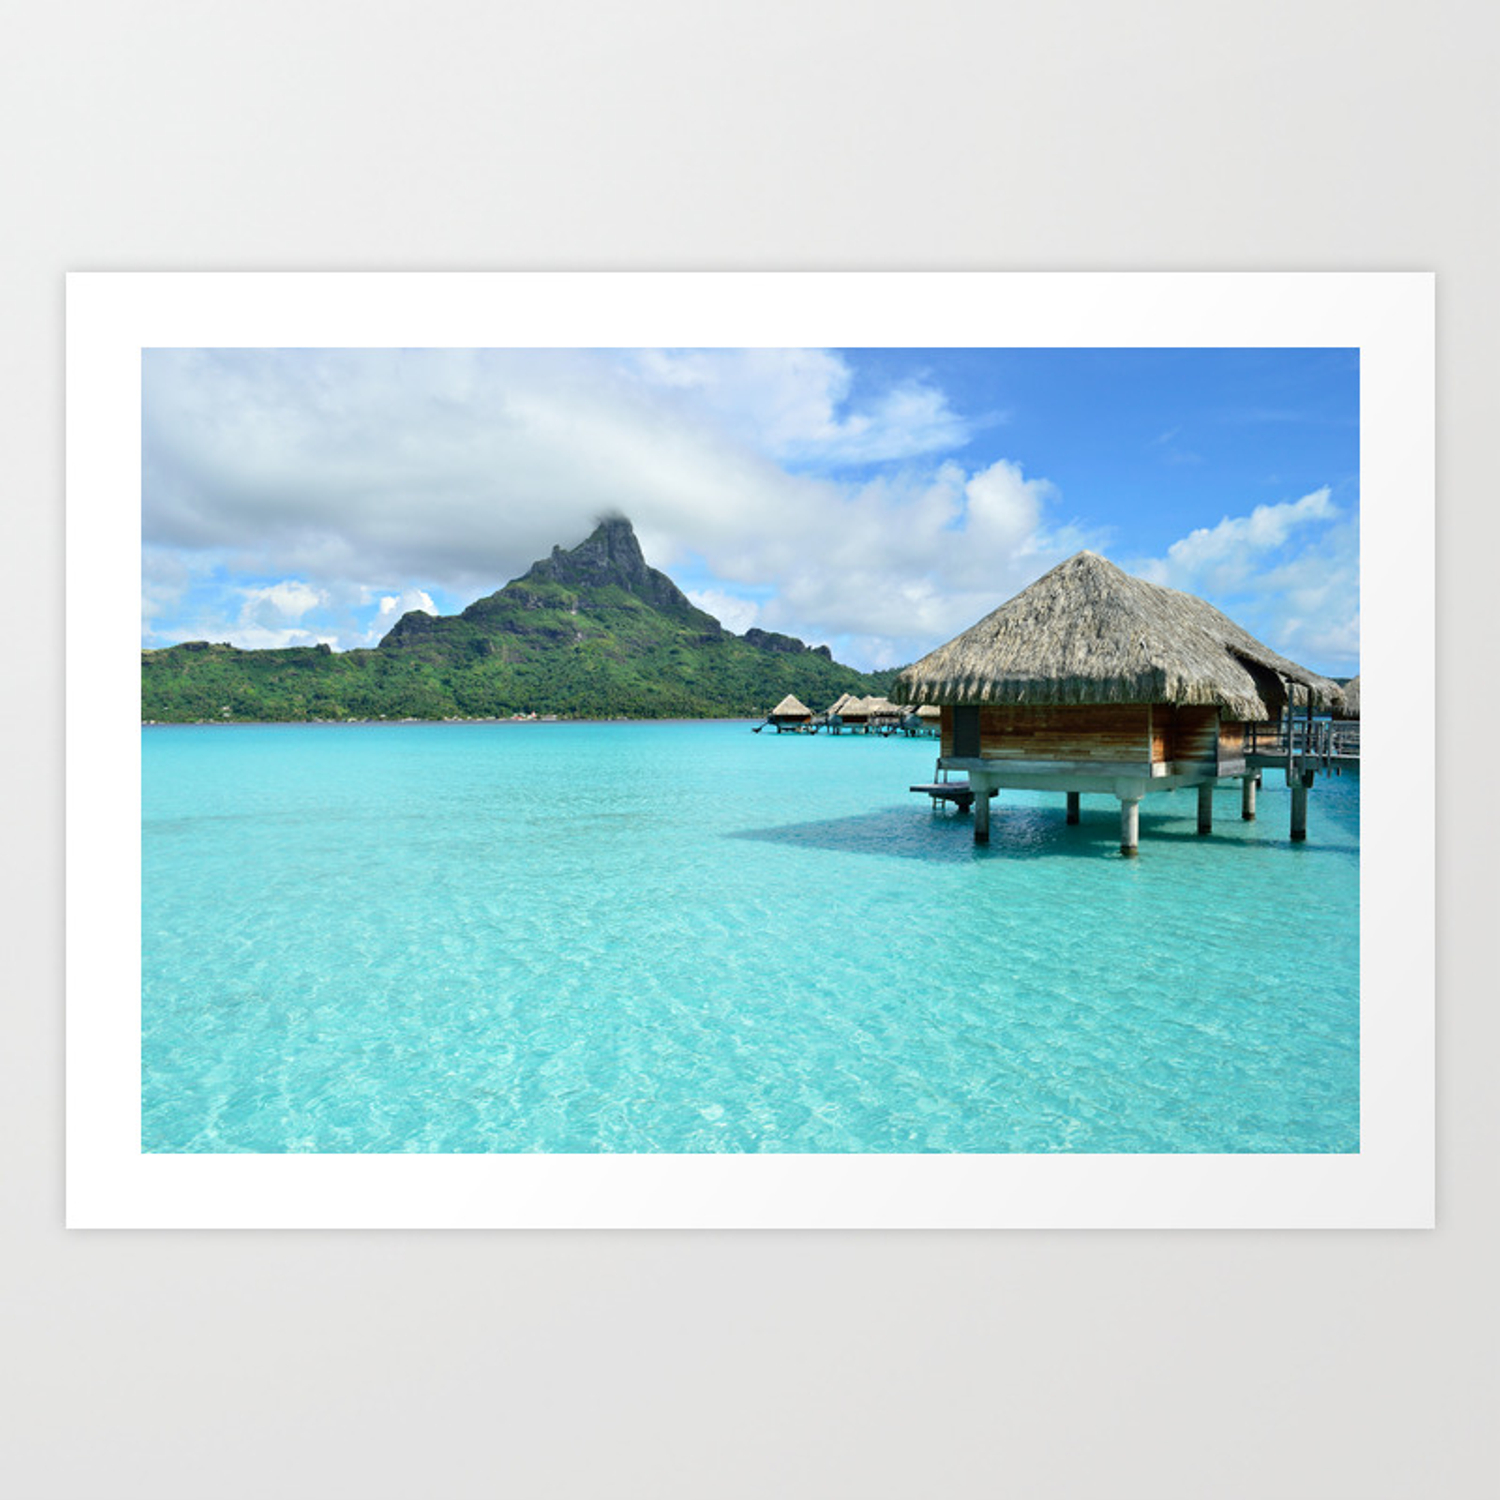 Luxury Over Water Resort With View On Bora Bora Island Art Print